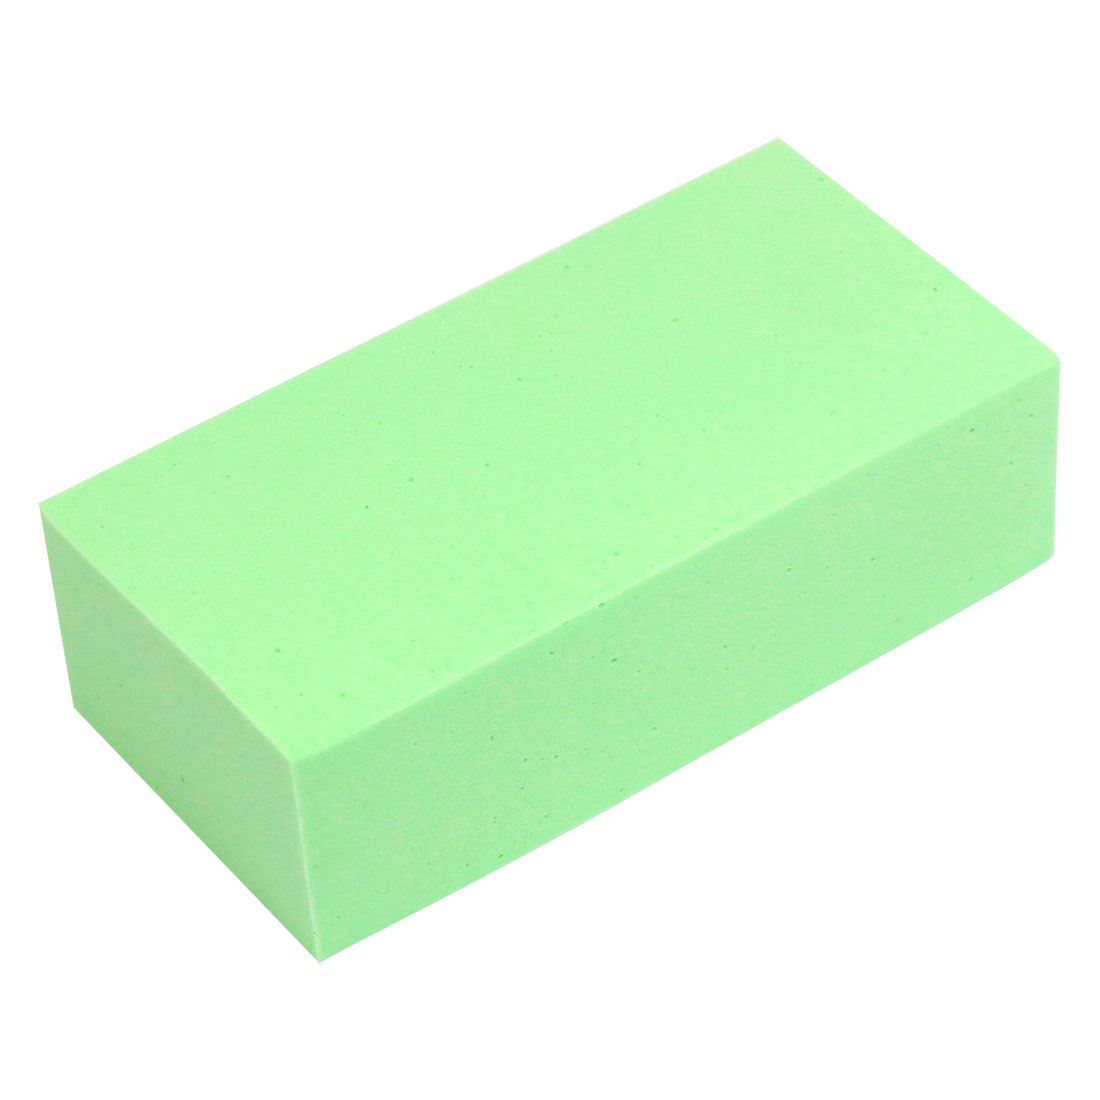 11.5cmx5.5cmx3.5cm Home Office Auto Car Wash Green PVA Suction Sponge Block